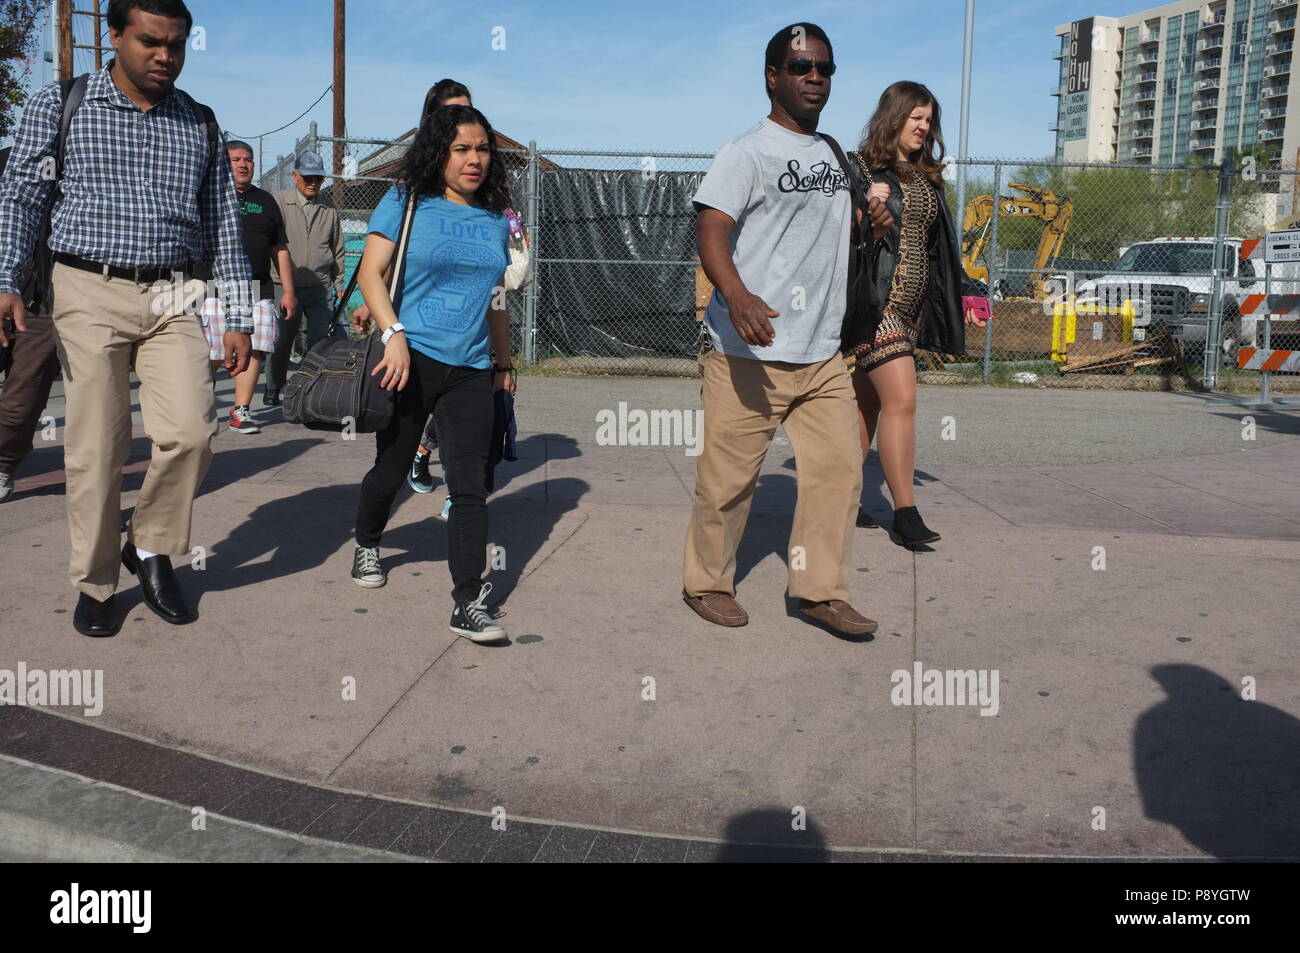 Los Angeles, USA - July 29: Unidentified random people in the streets of Downtown of Los Angeles, CA on July 29, 2018. - Stock Image